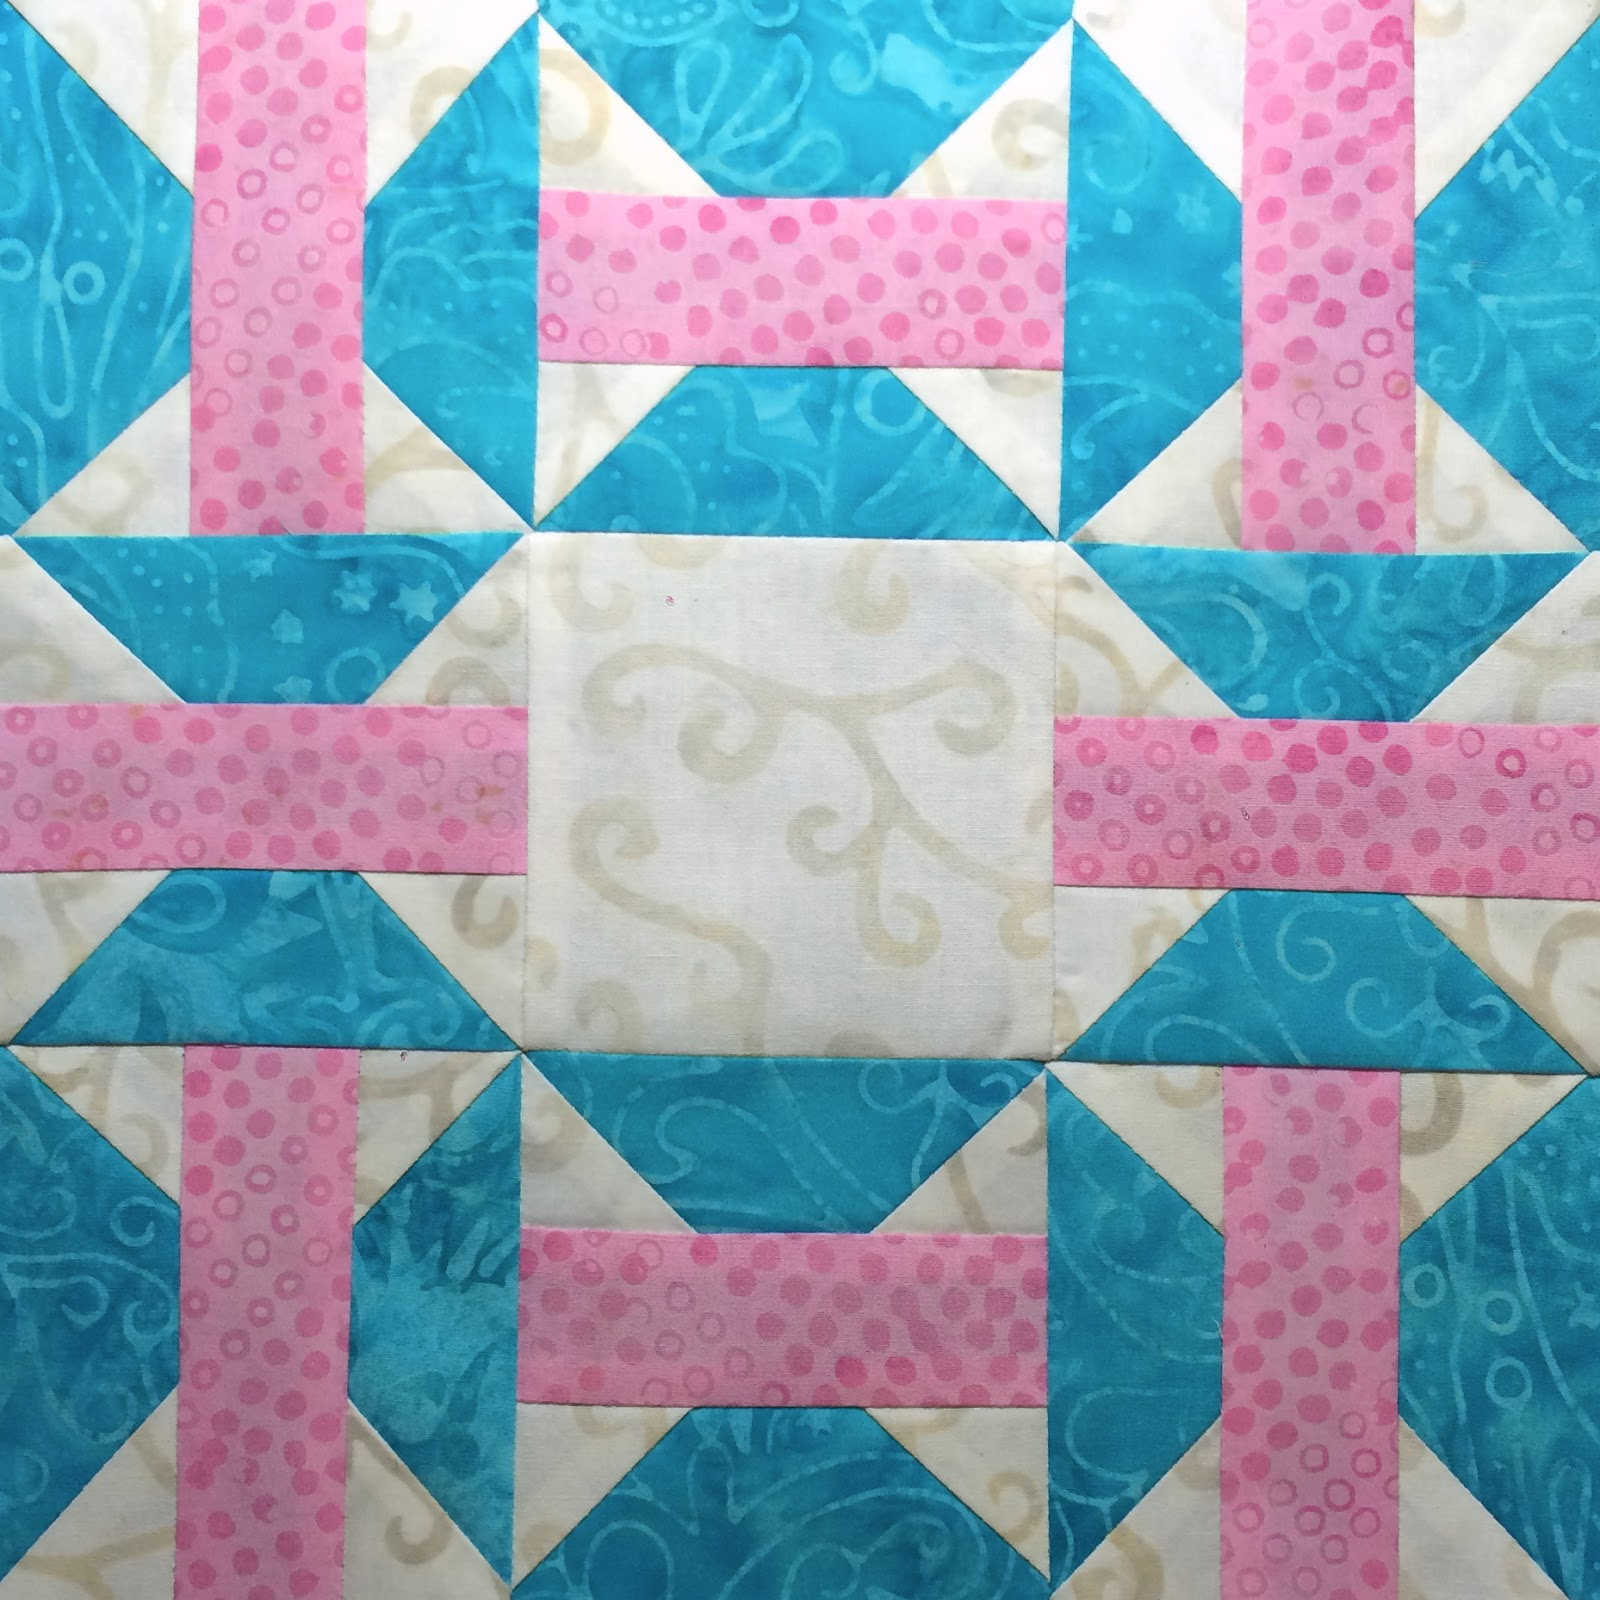 Also, one theory is that the name comes from quilters begging scraps from  friends. It is a block that would lend itself to a scrappy approach.